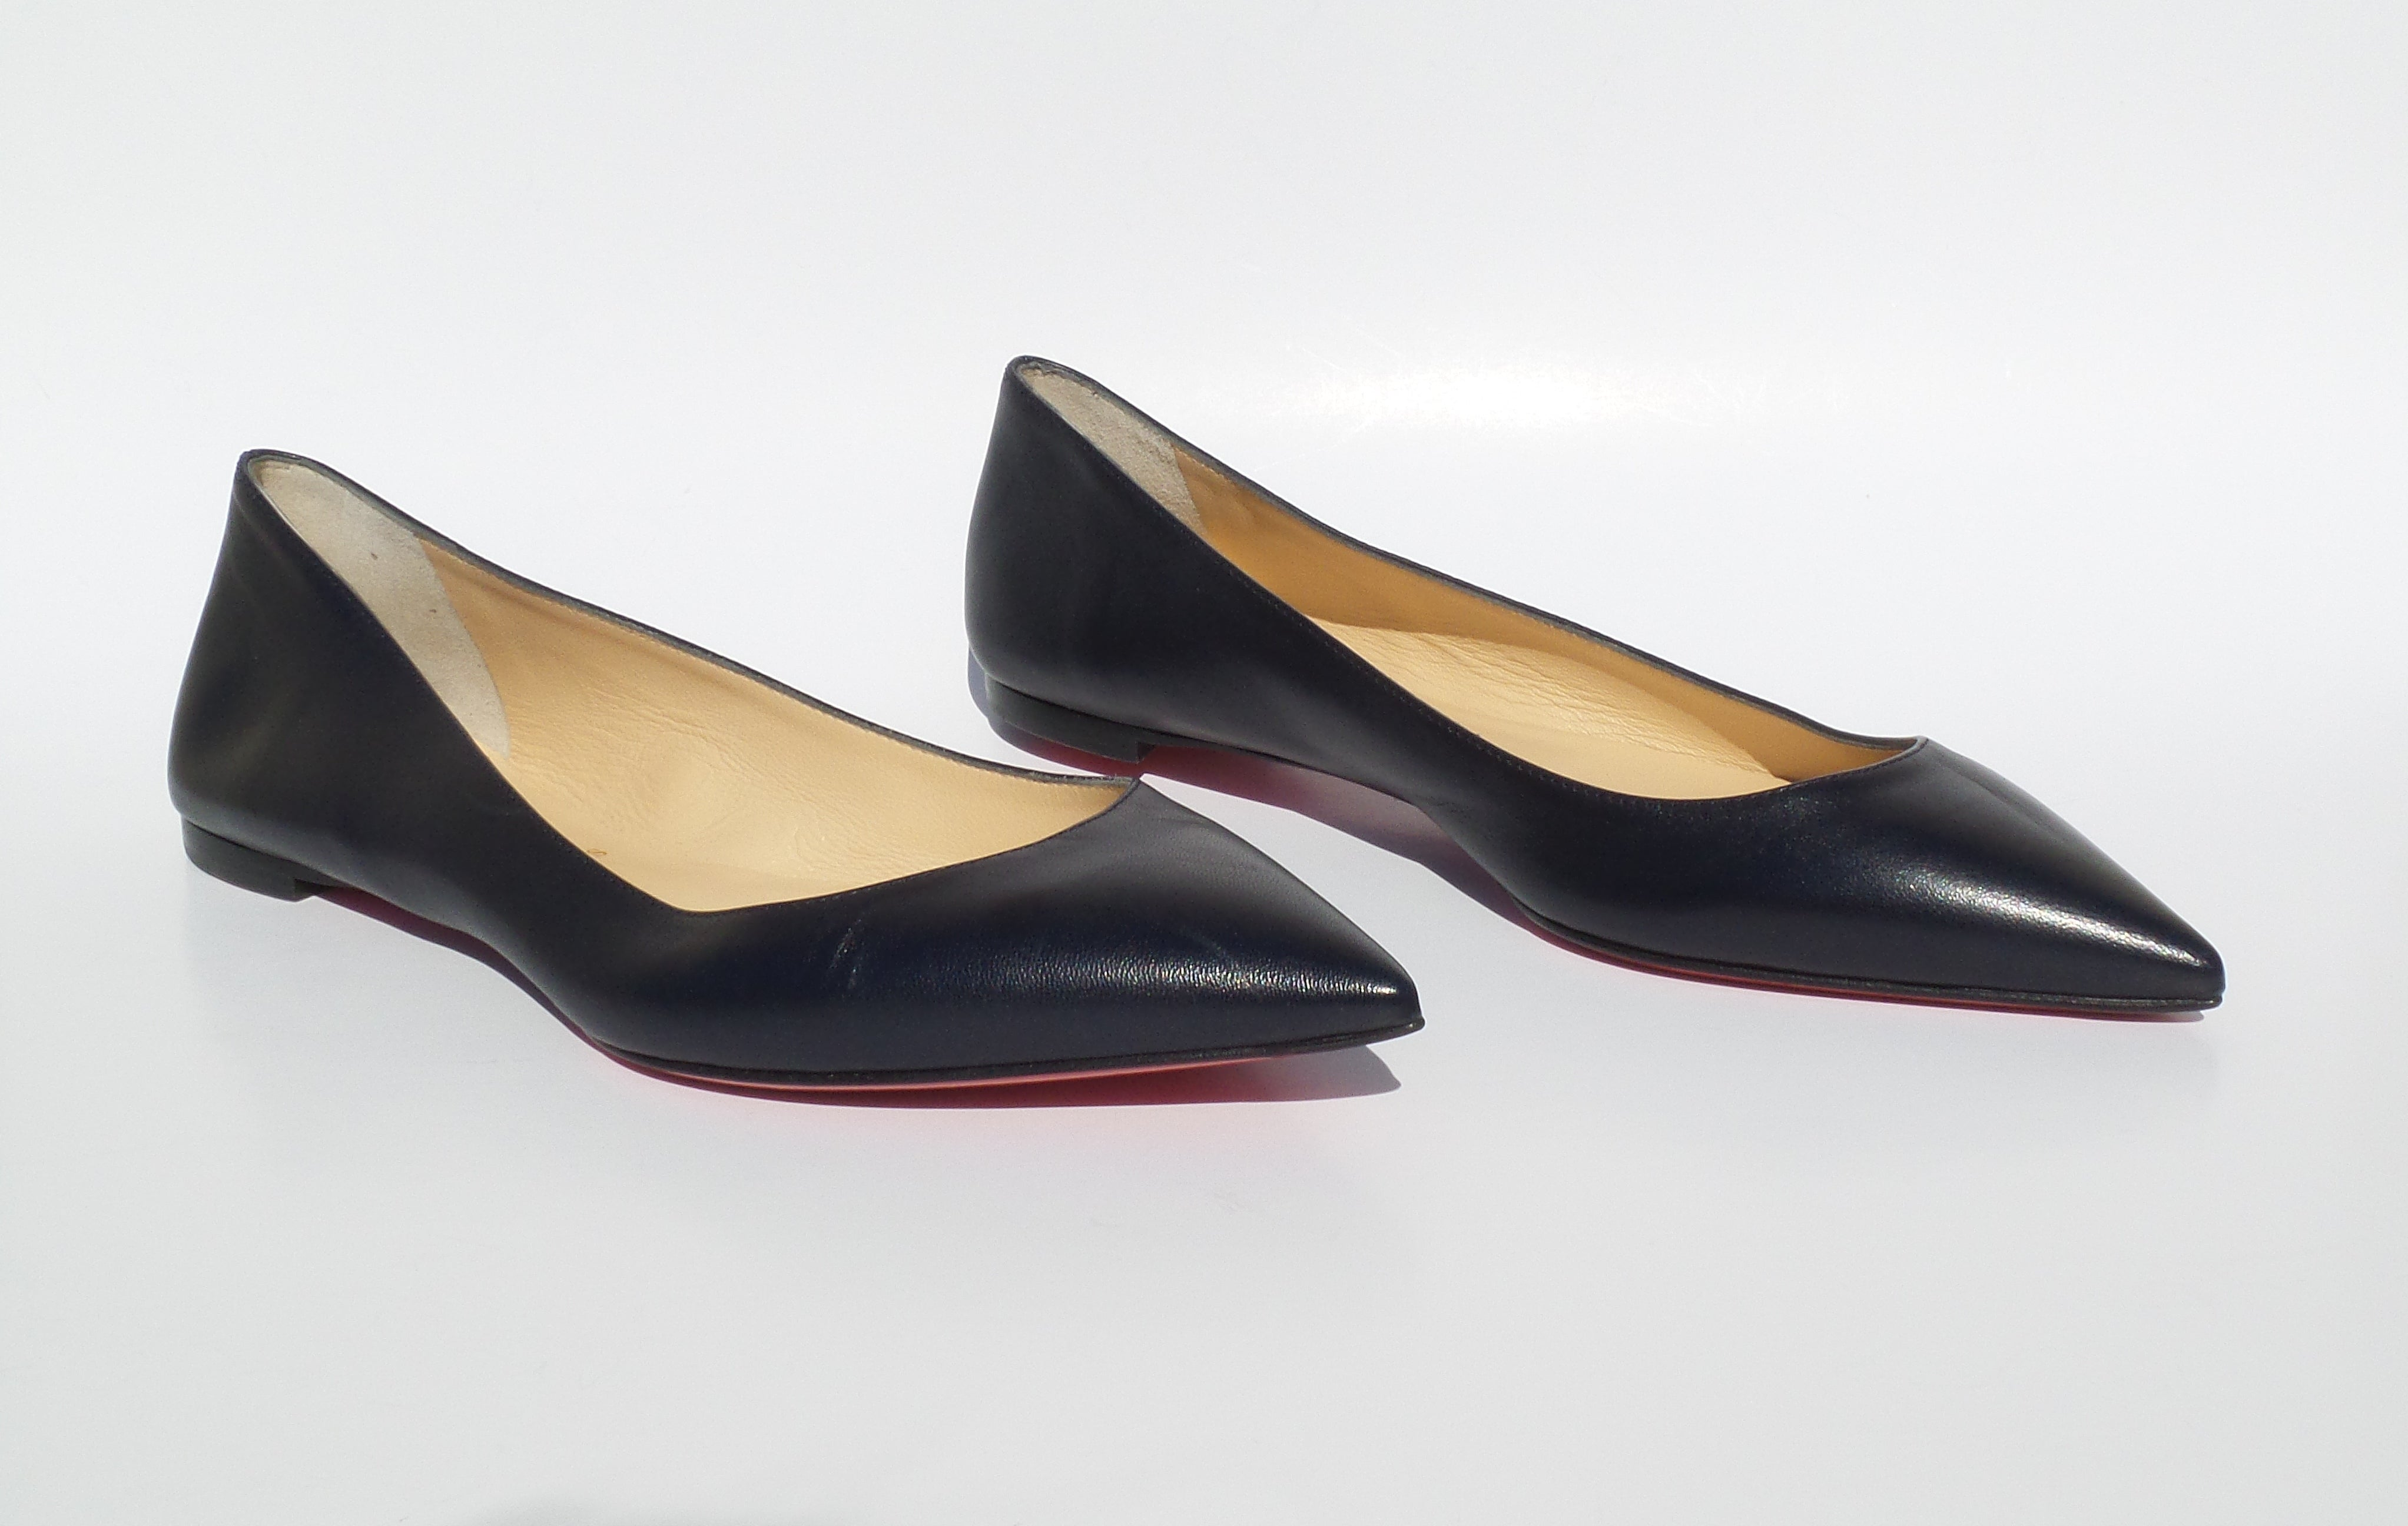 'Sold' CHRISTIAN LOUBOUTIN Navy Blue Leather Pointed Toe Ballet Flats 37.5 GUC